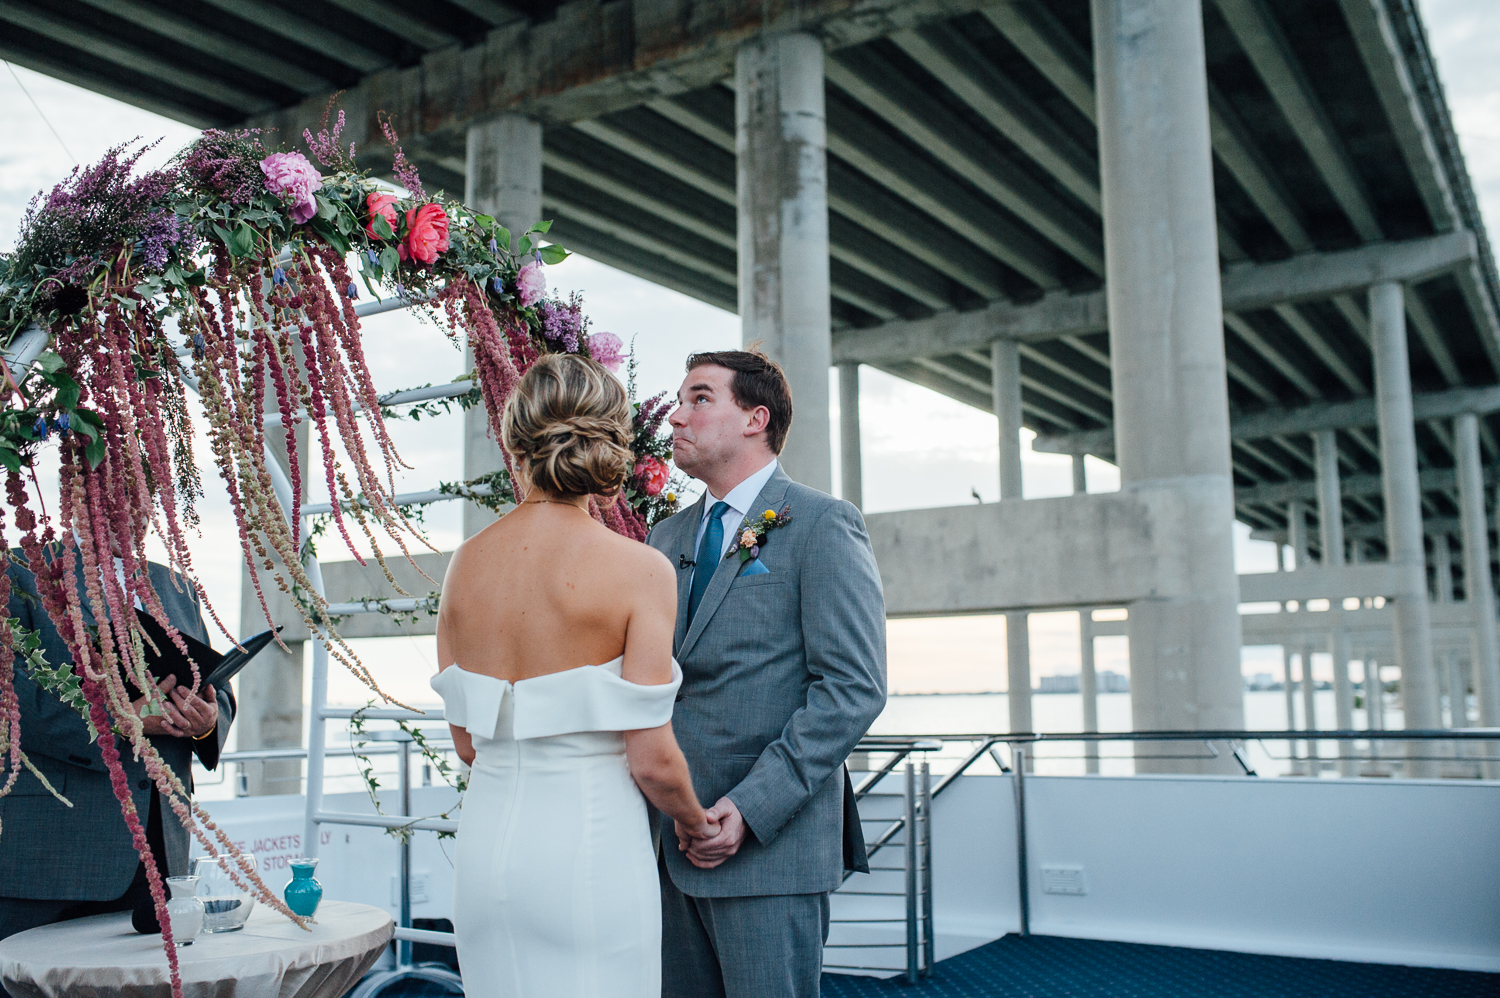 Jessenia Gonzalez Photography-The Biscayne Lady- Yacht-Downtown-Bayside-Wedding-Bridesmaids-groomsmen (29 of 103).jpg